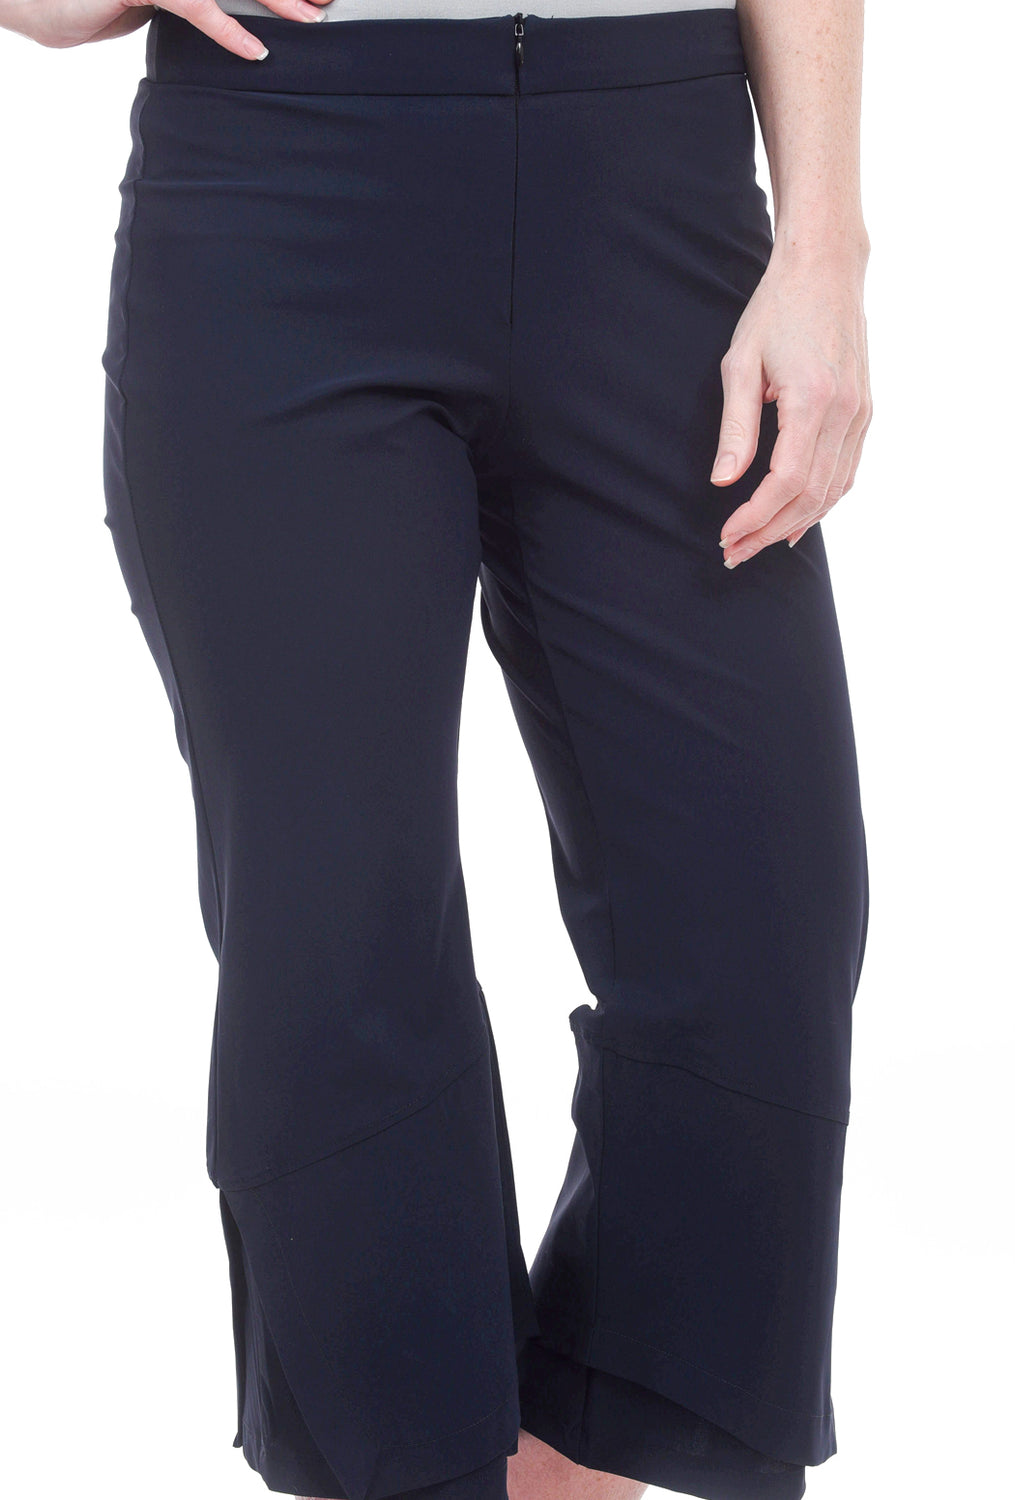 Porto Rockstar Pants, Deep Blue